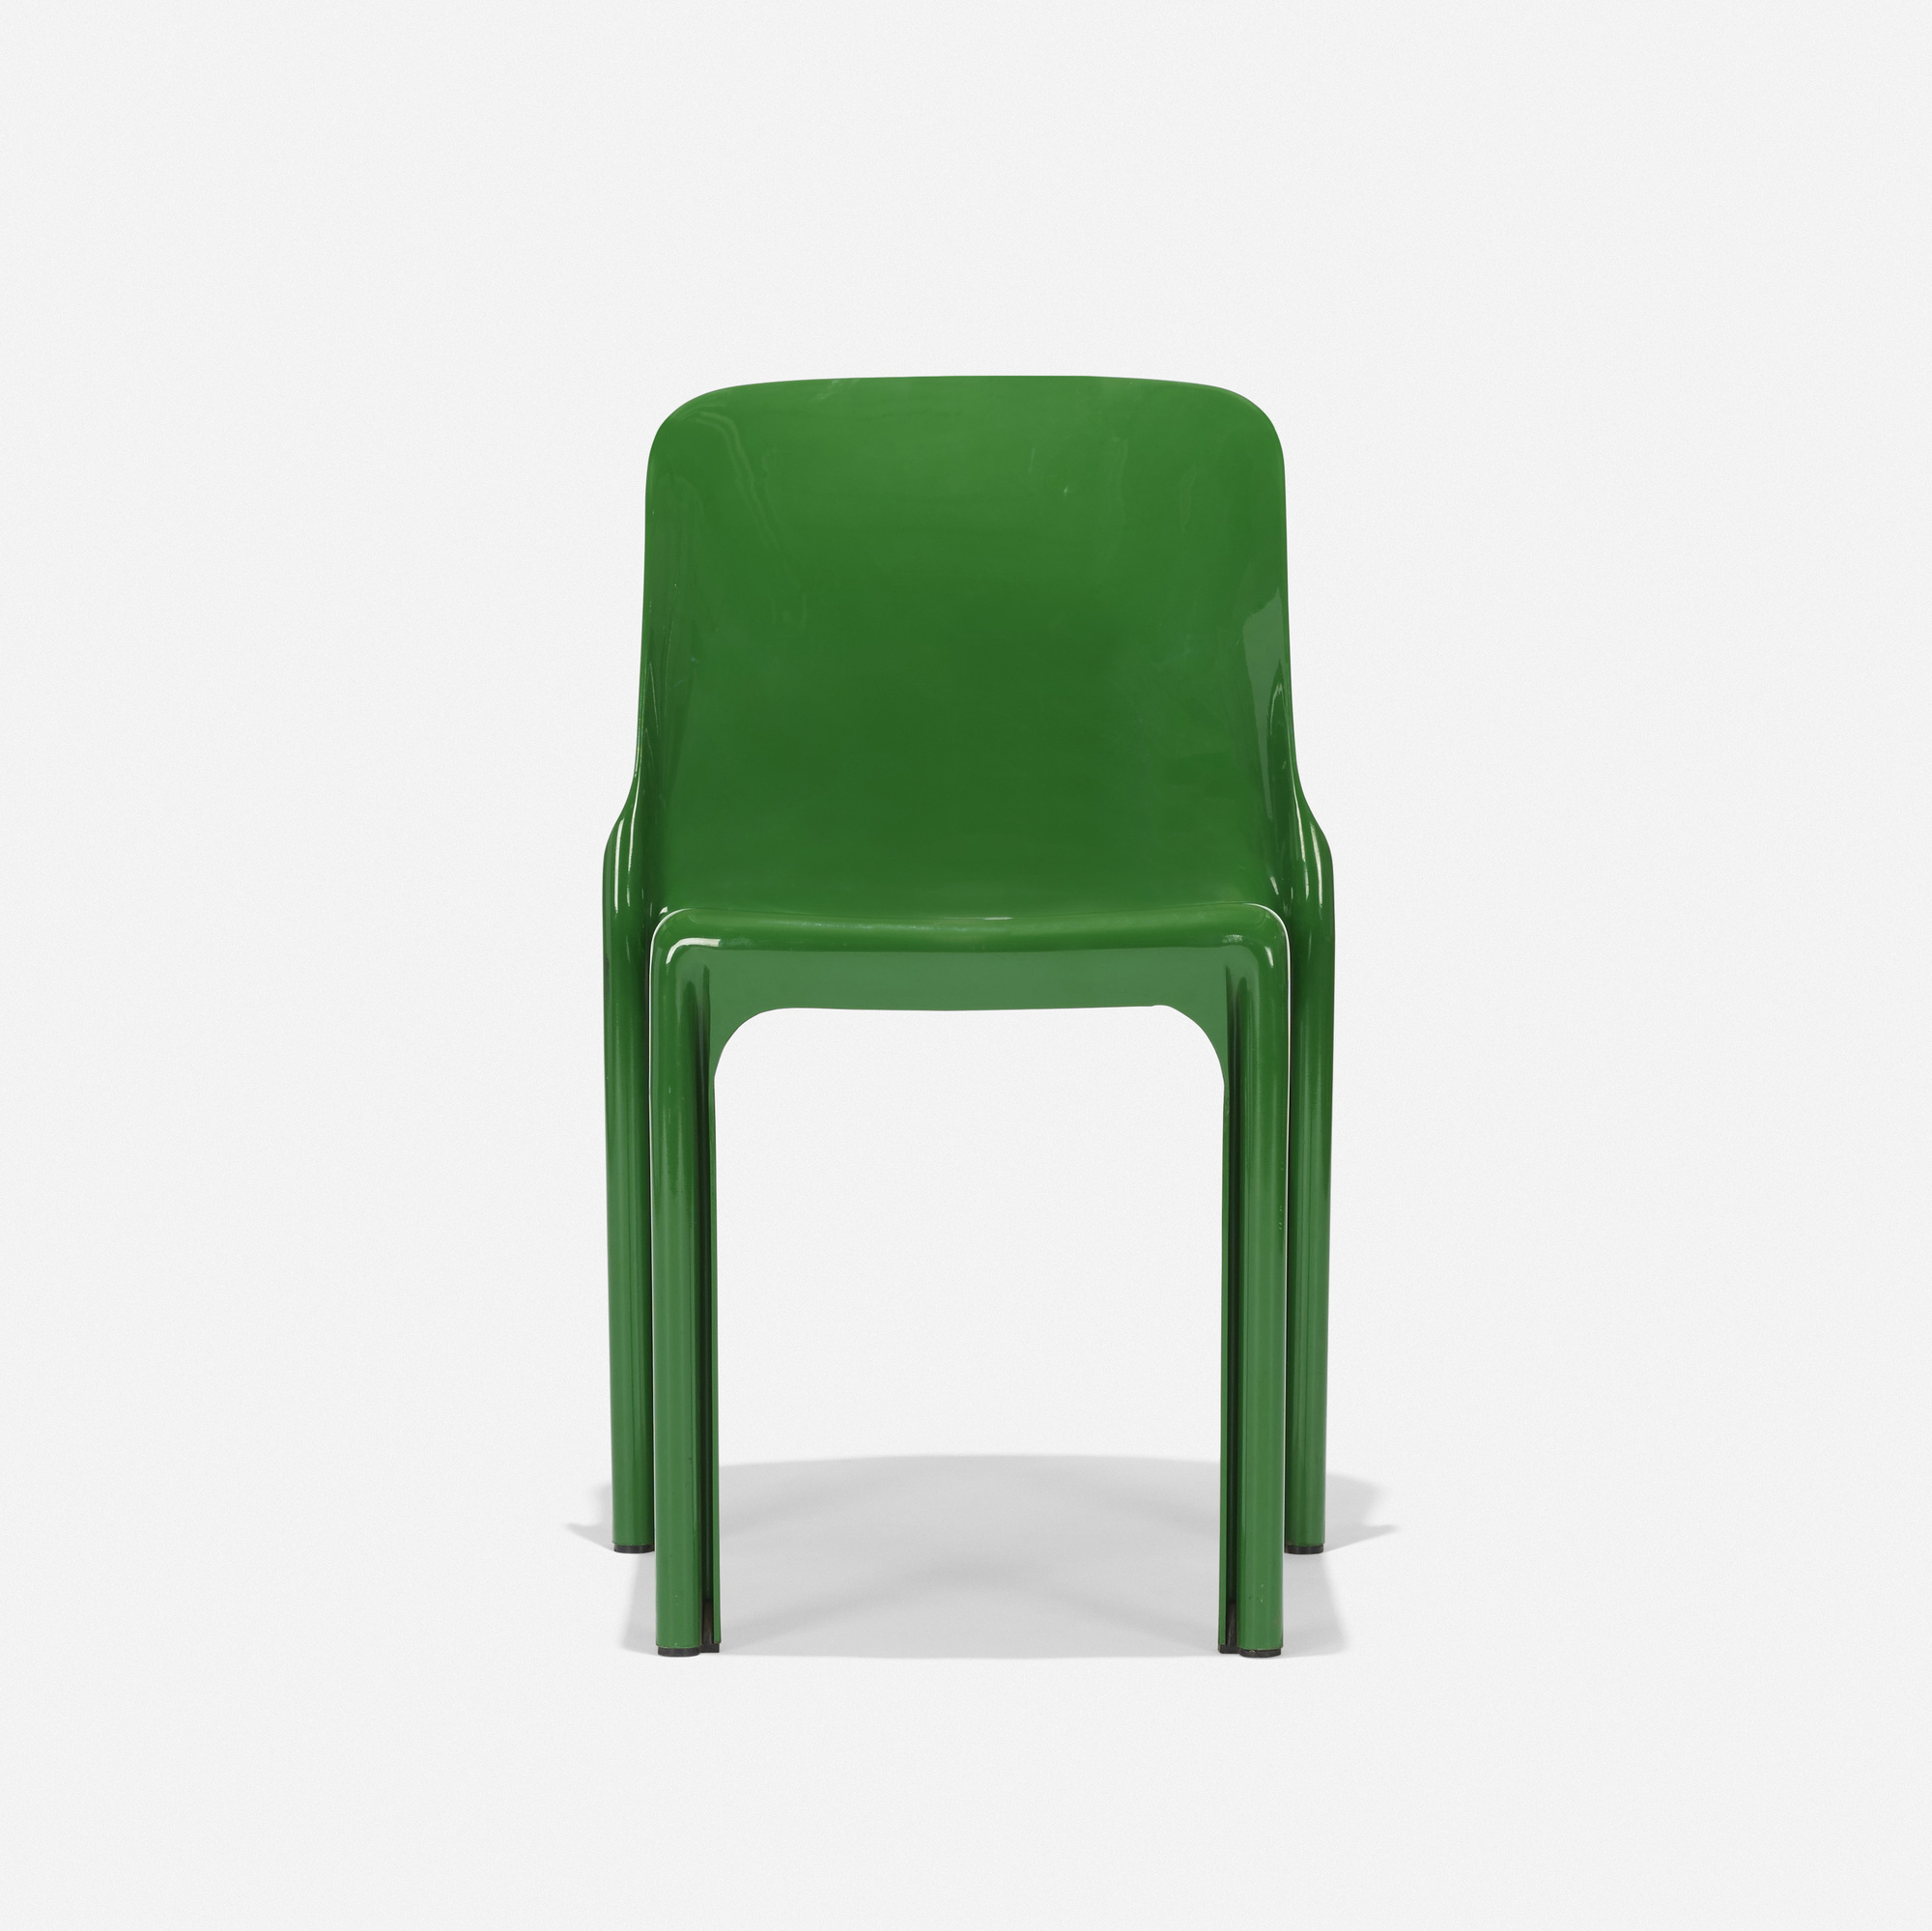 107: Vico Magistretti / Selene Stacking chair (2 of 4)